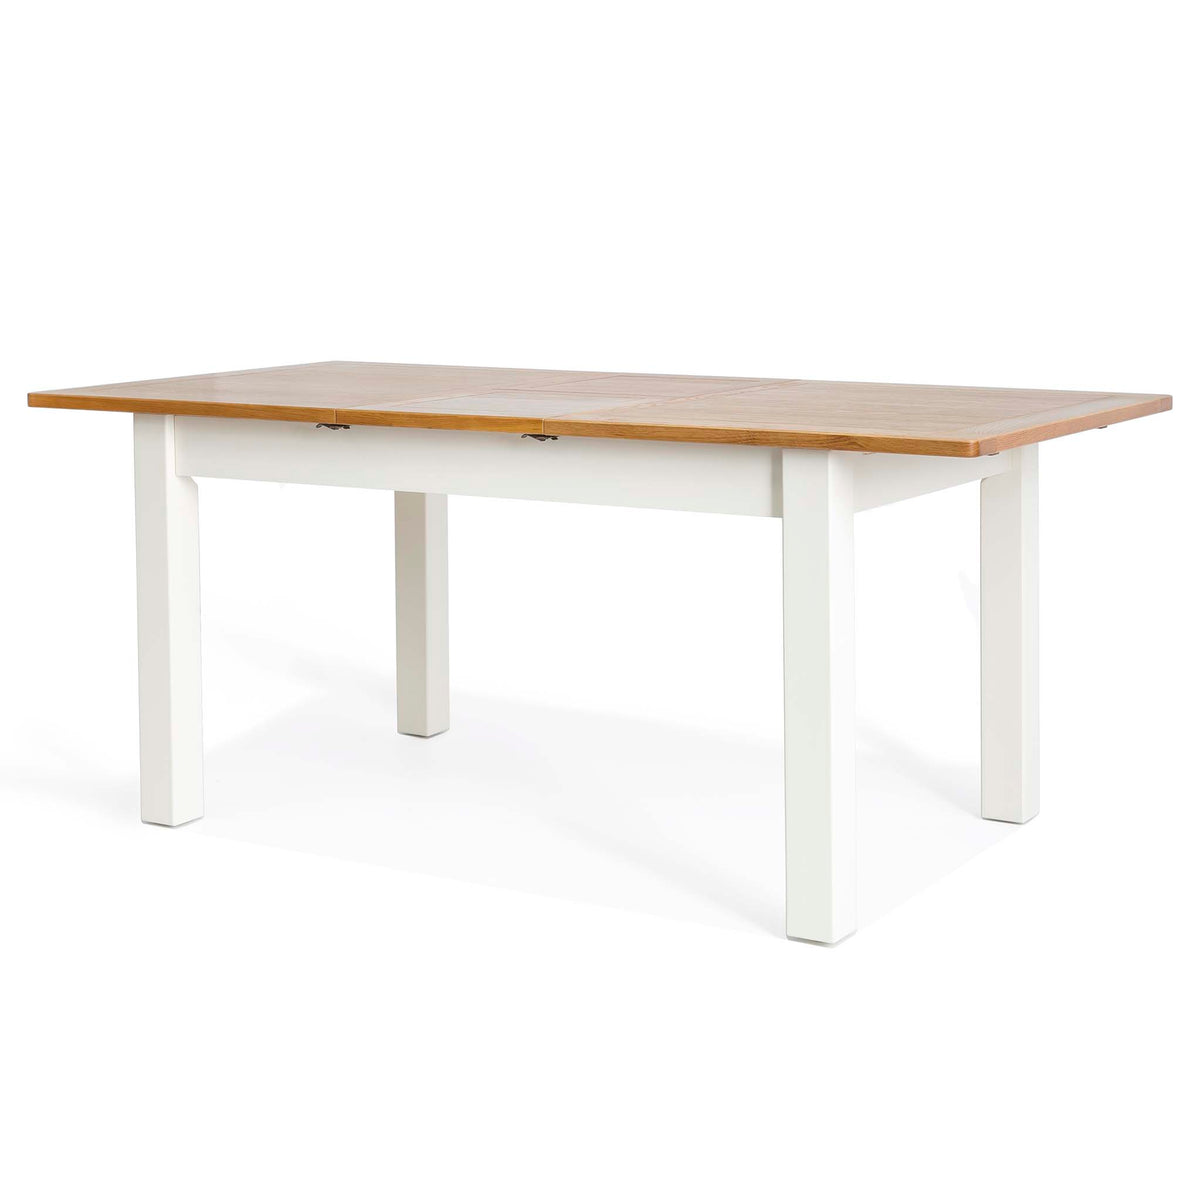 Padstow White Wooden Extending Dining Table - Side view of table fully extended